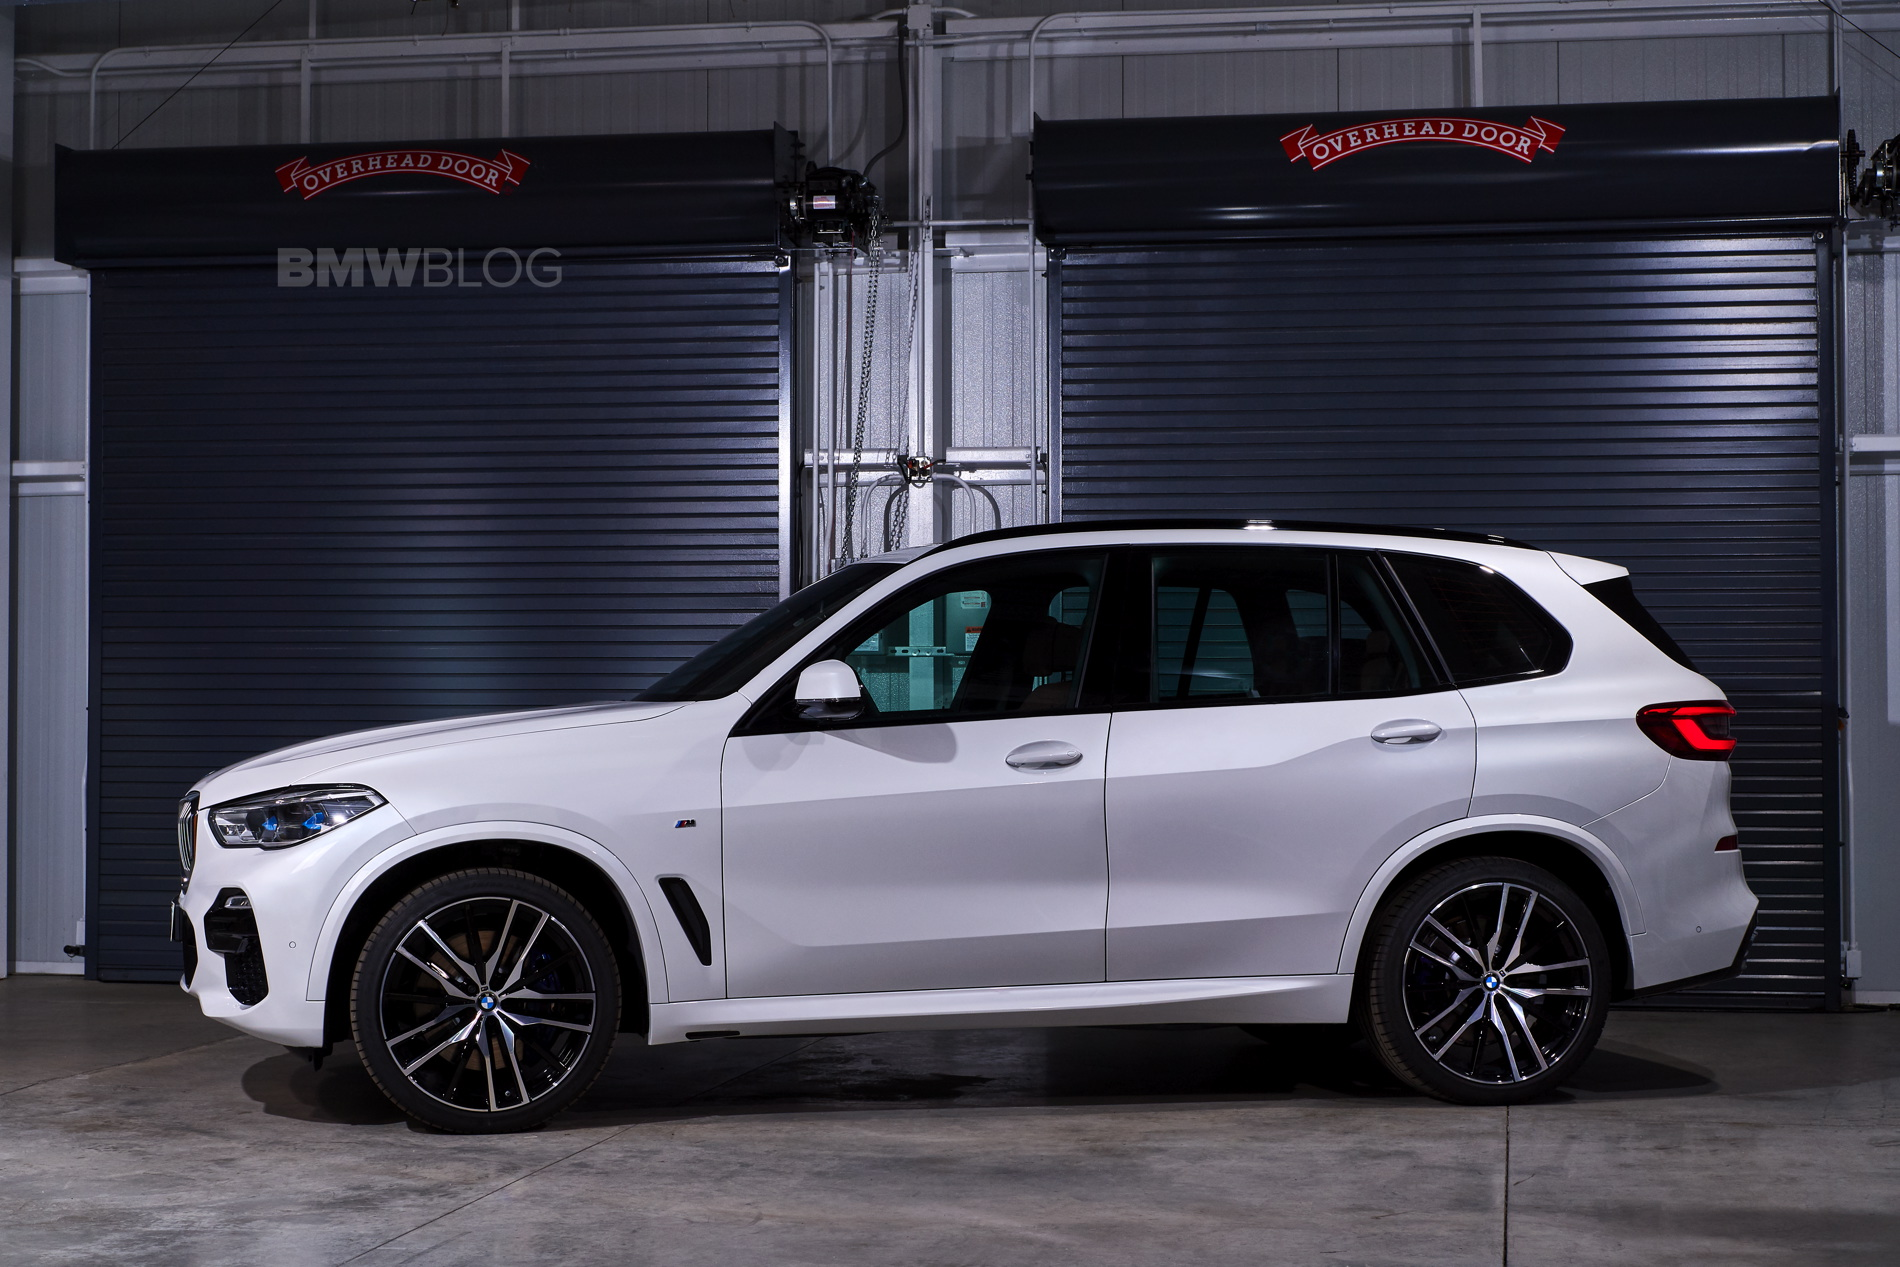 Real Life Photos Of The Bmw G05 X5